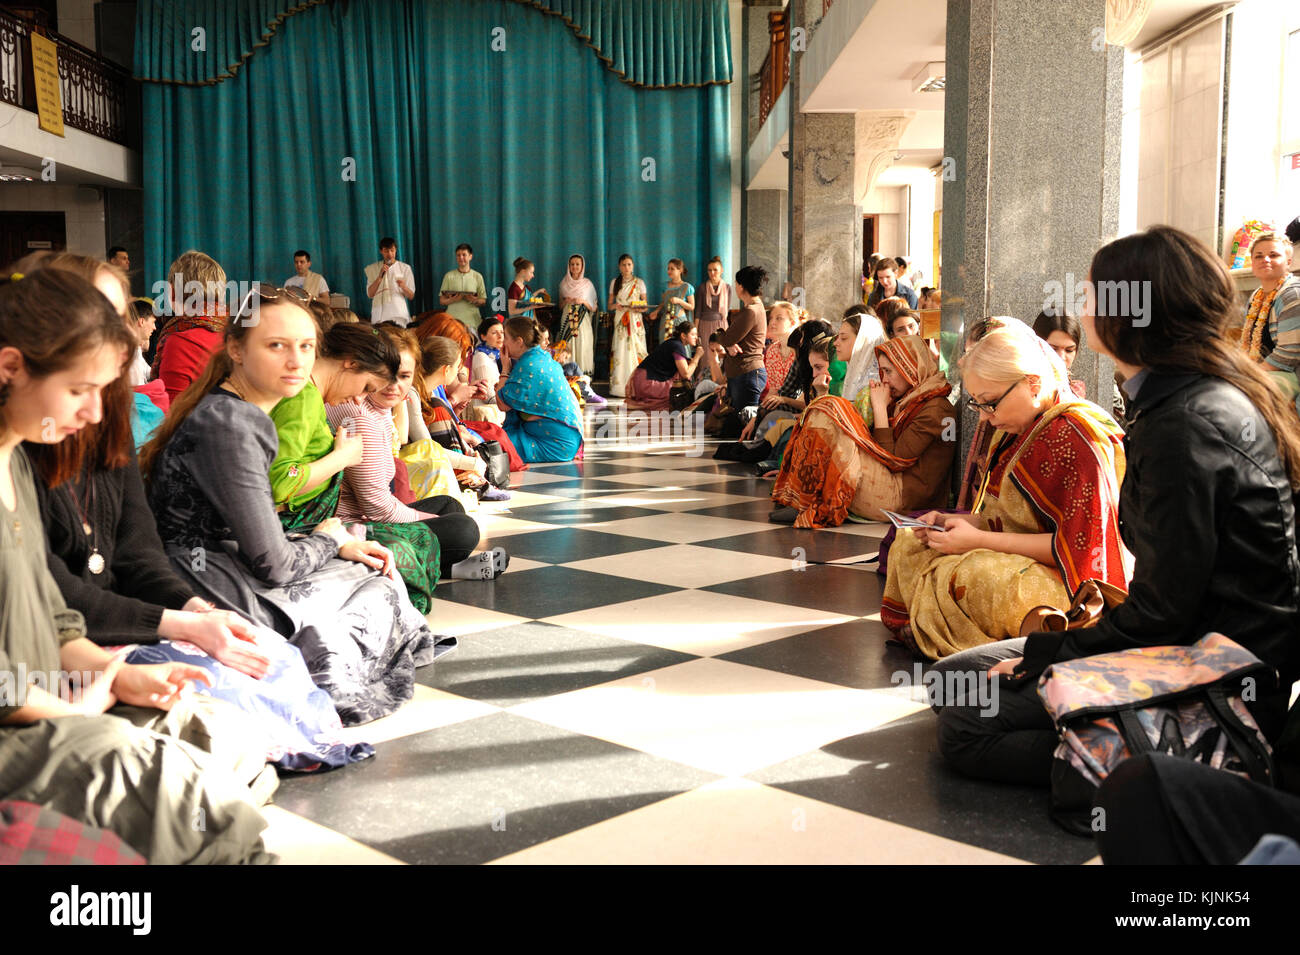 Krishna parishioners sitting on a floor in a temple and waiting for attendants giving them Prasad - food that is - Stock Image